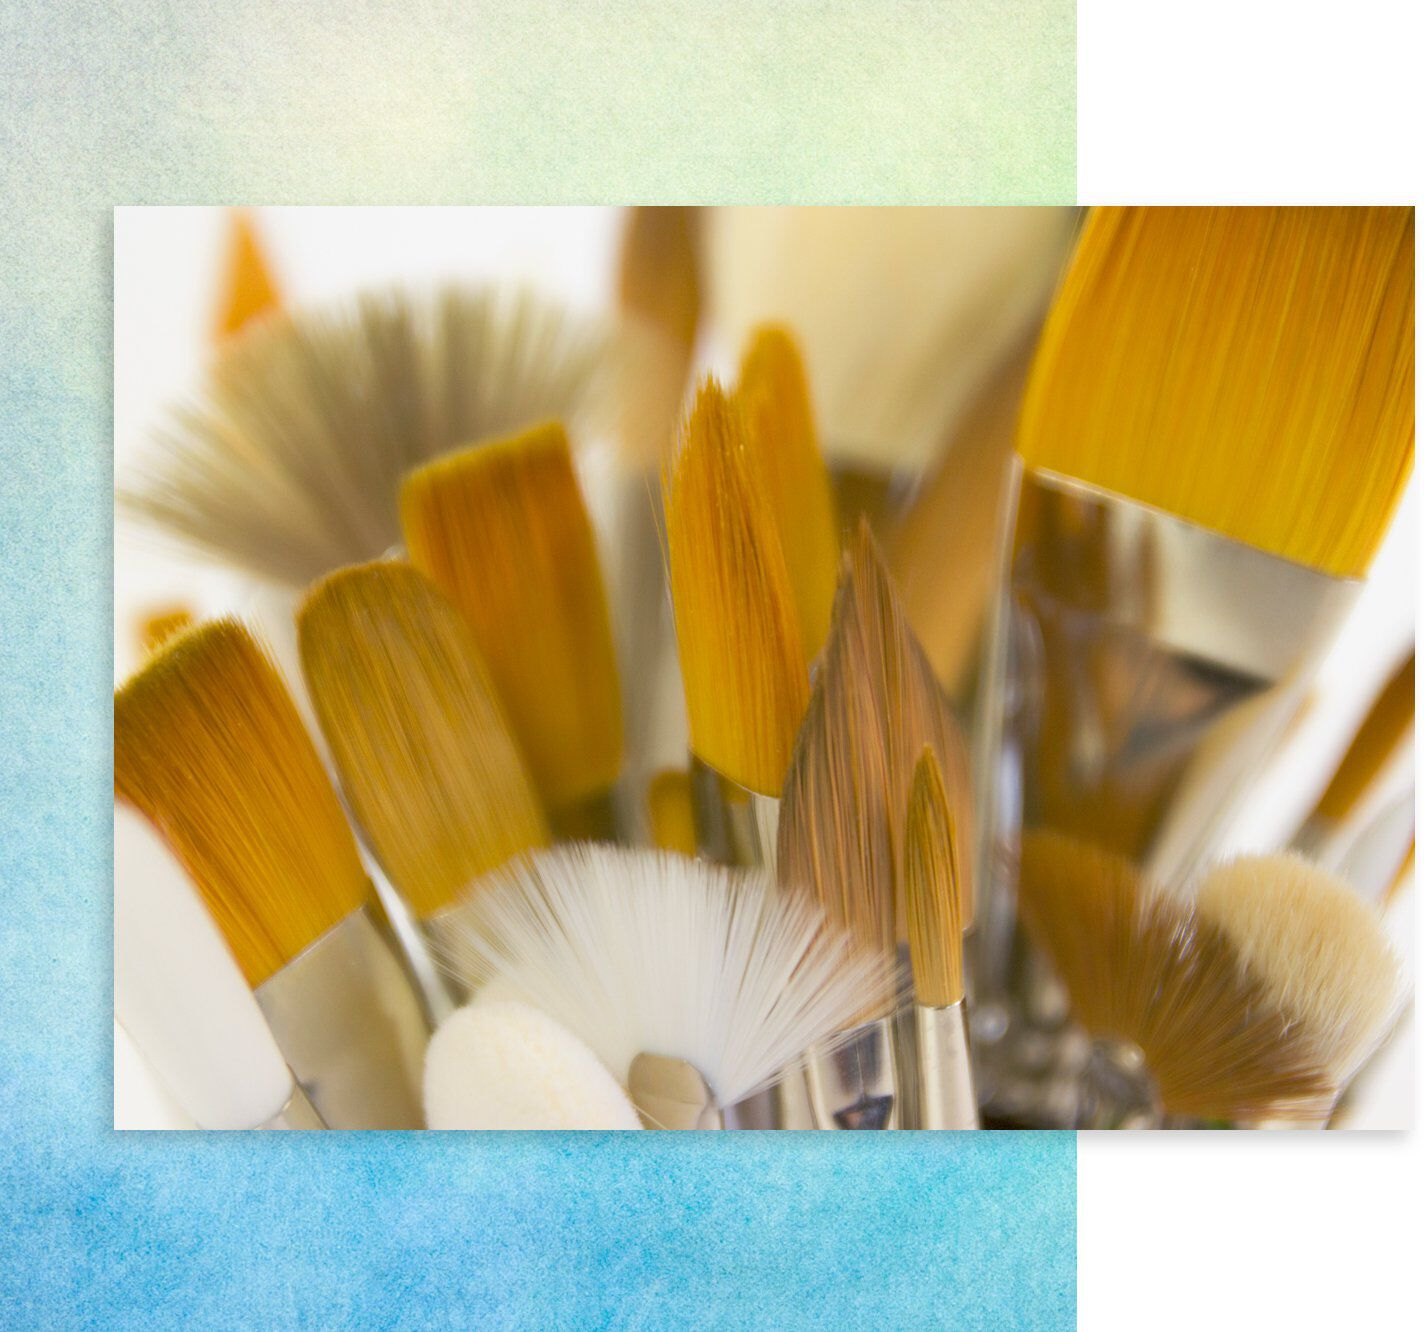 assorted sized paint brushes